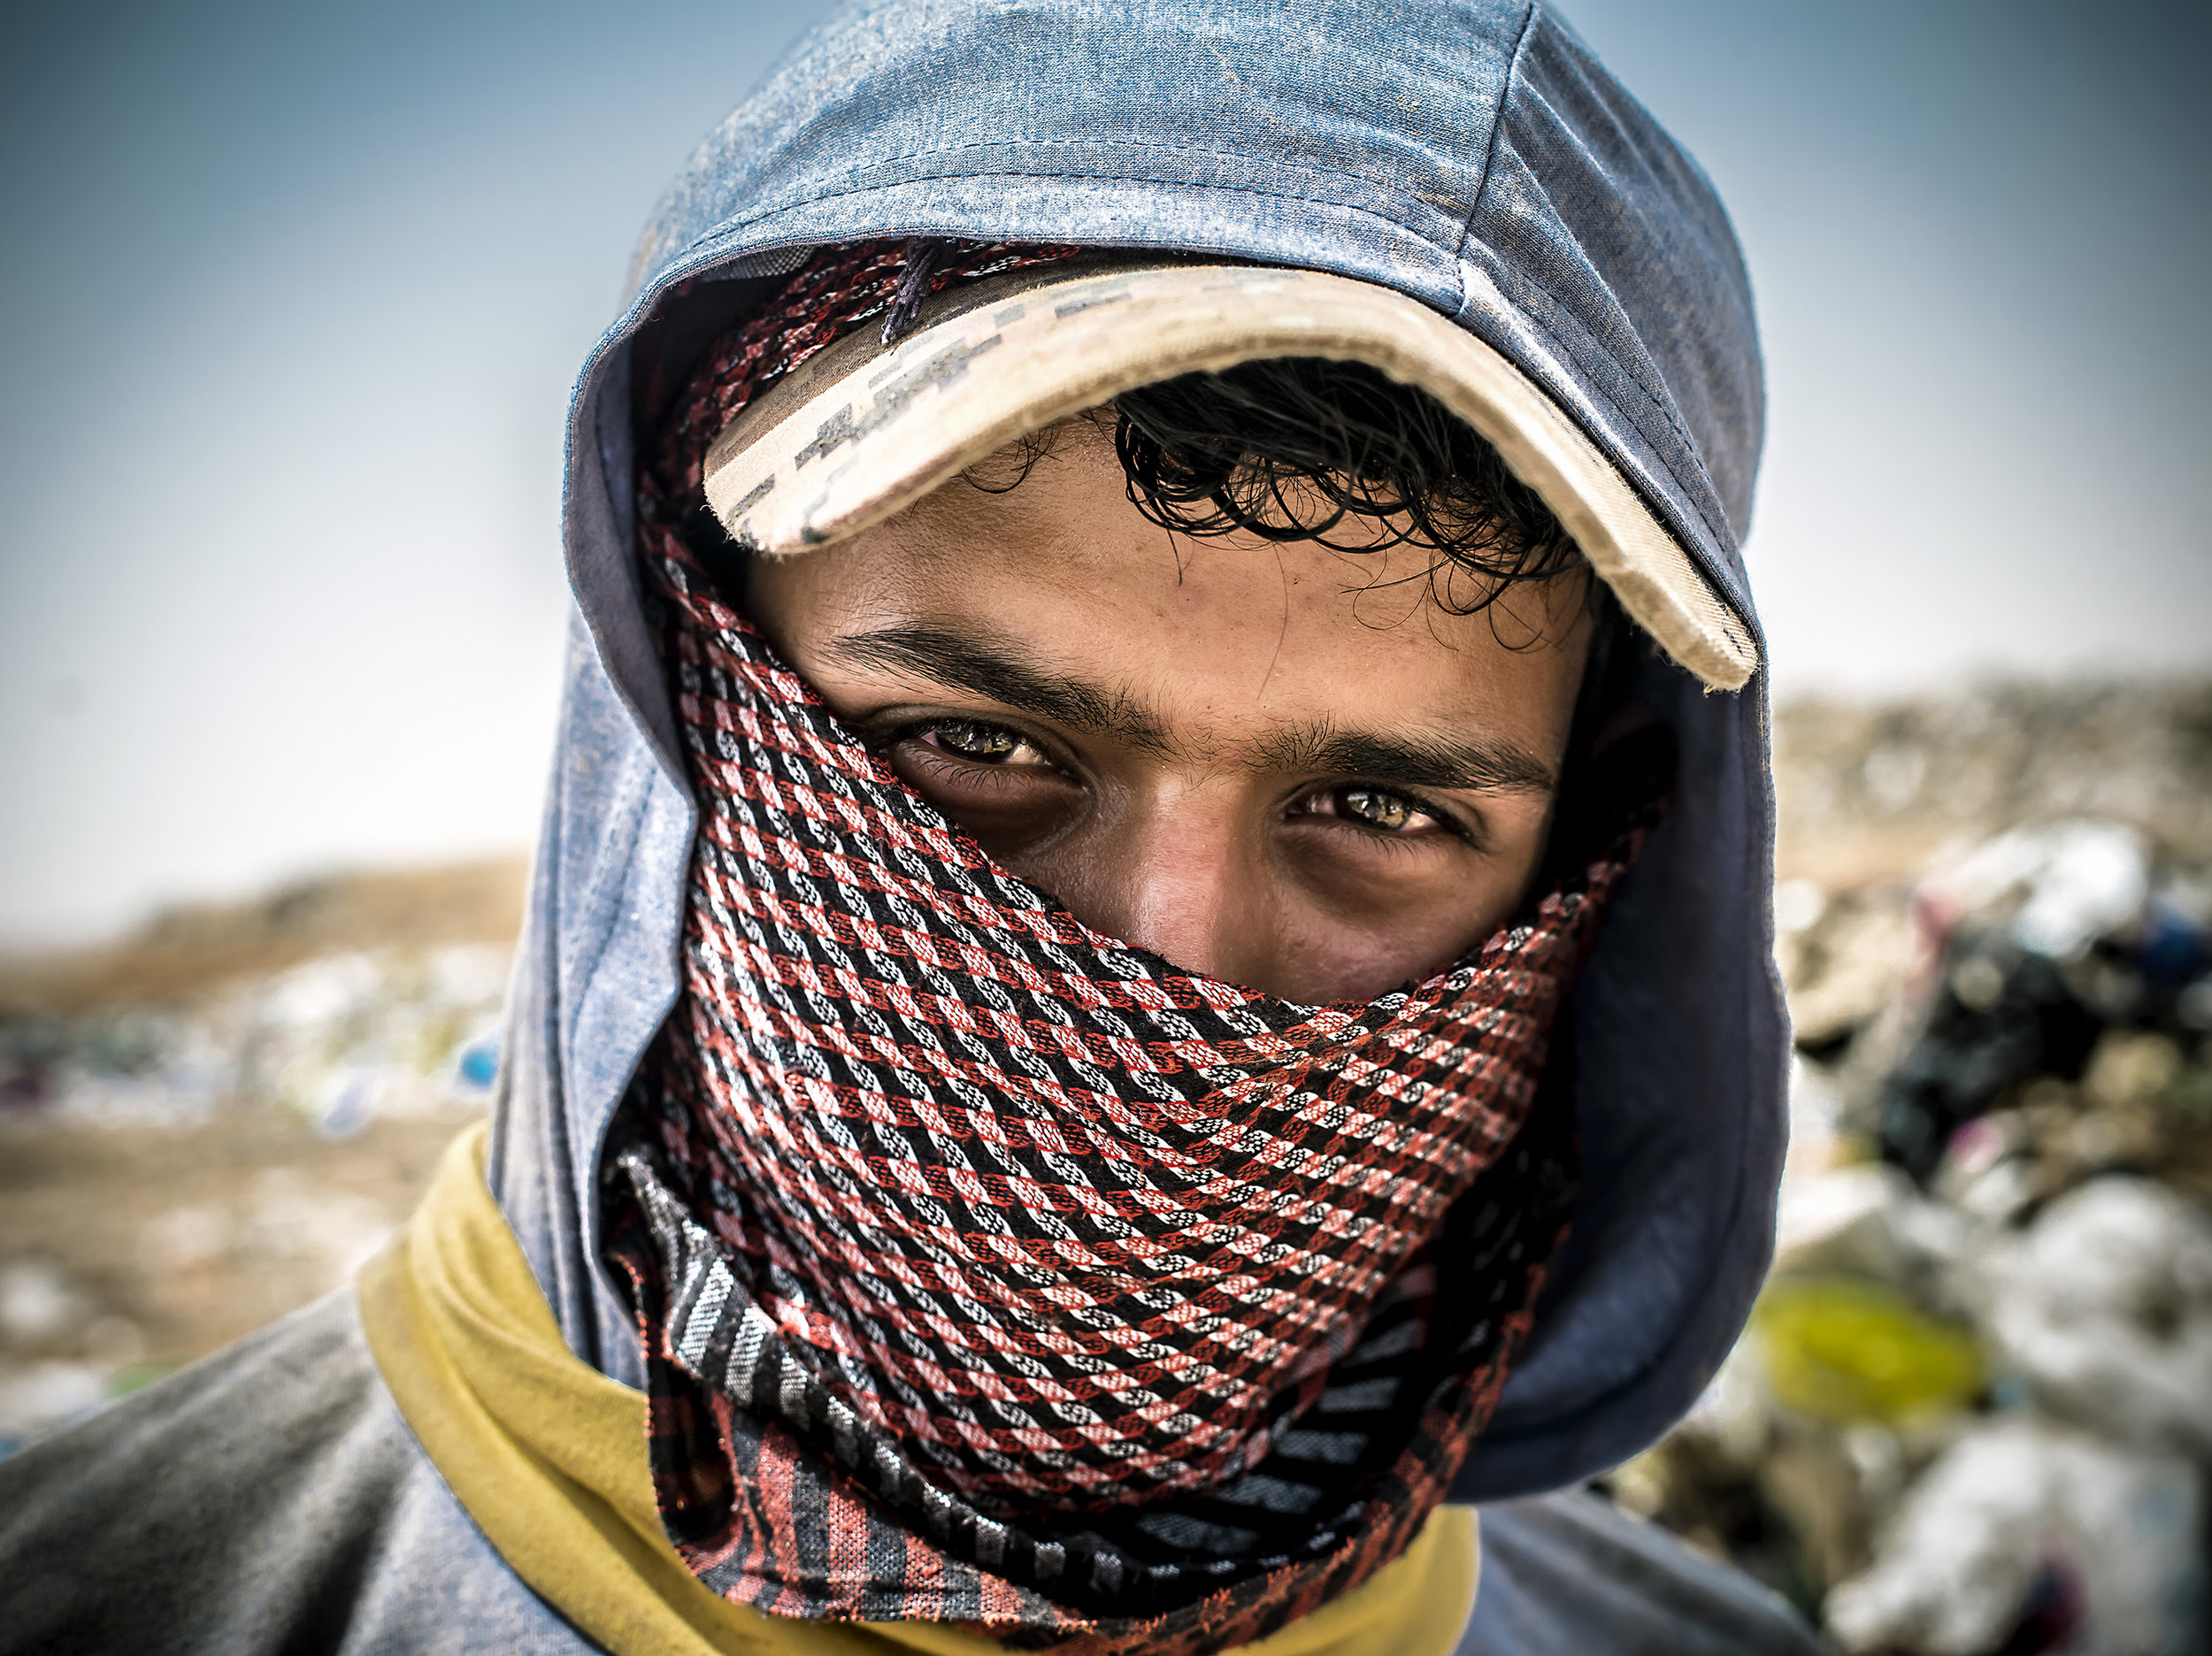 Maher Mansoor, 26 years old working at the Huseyneya dumpsite in Mafraq in Jordan.